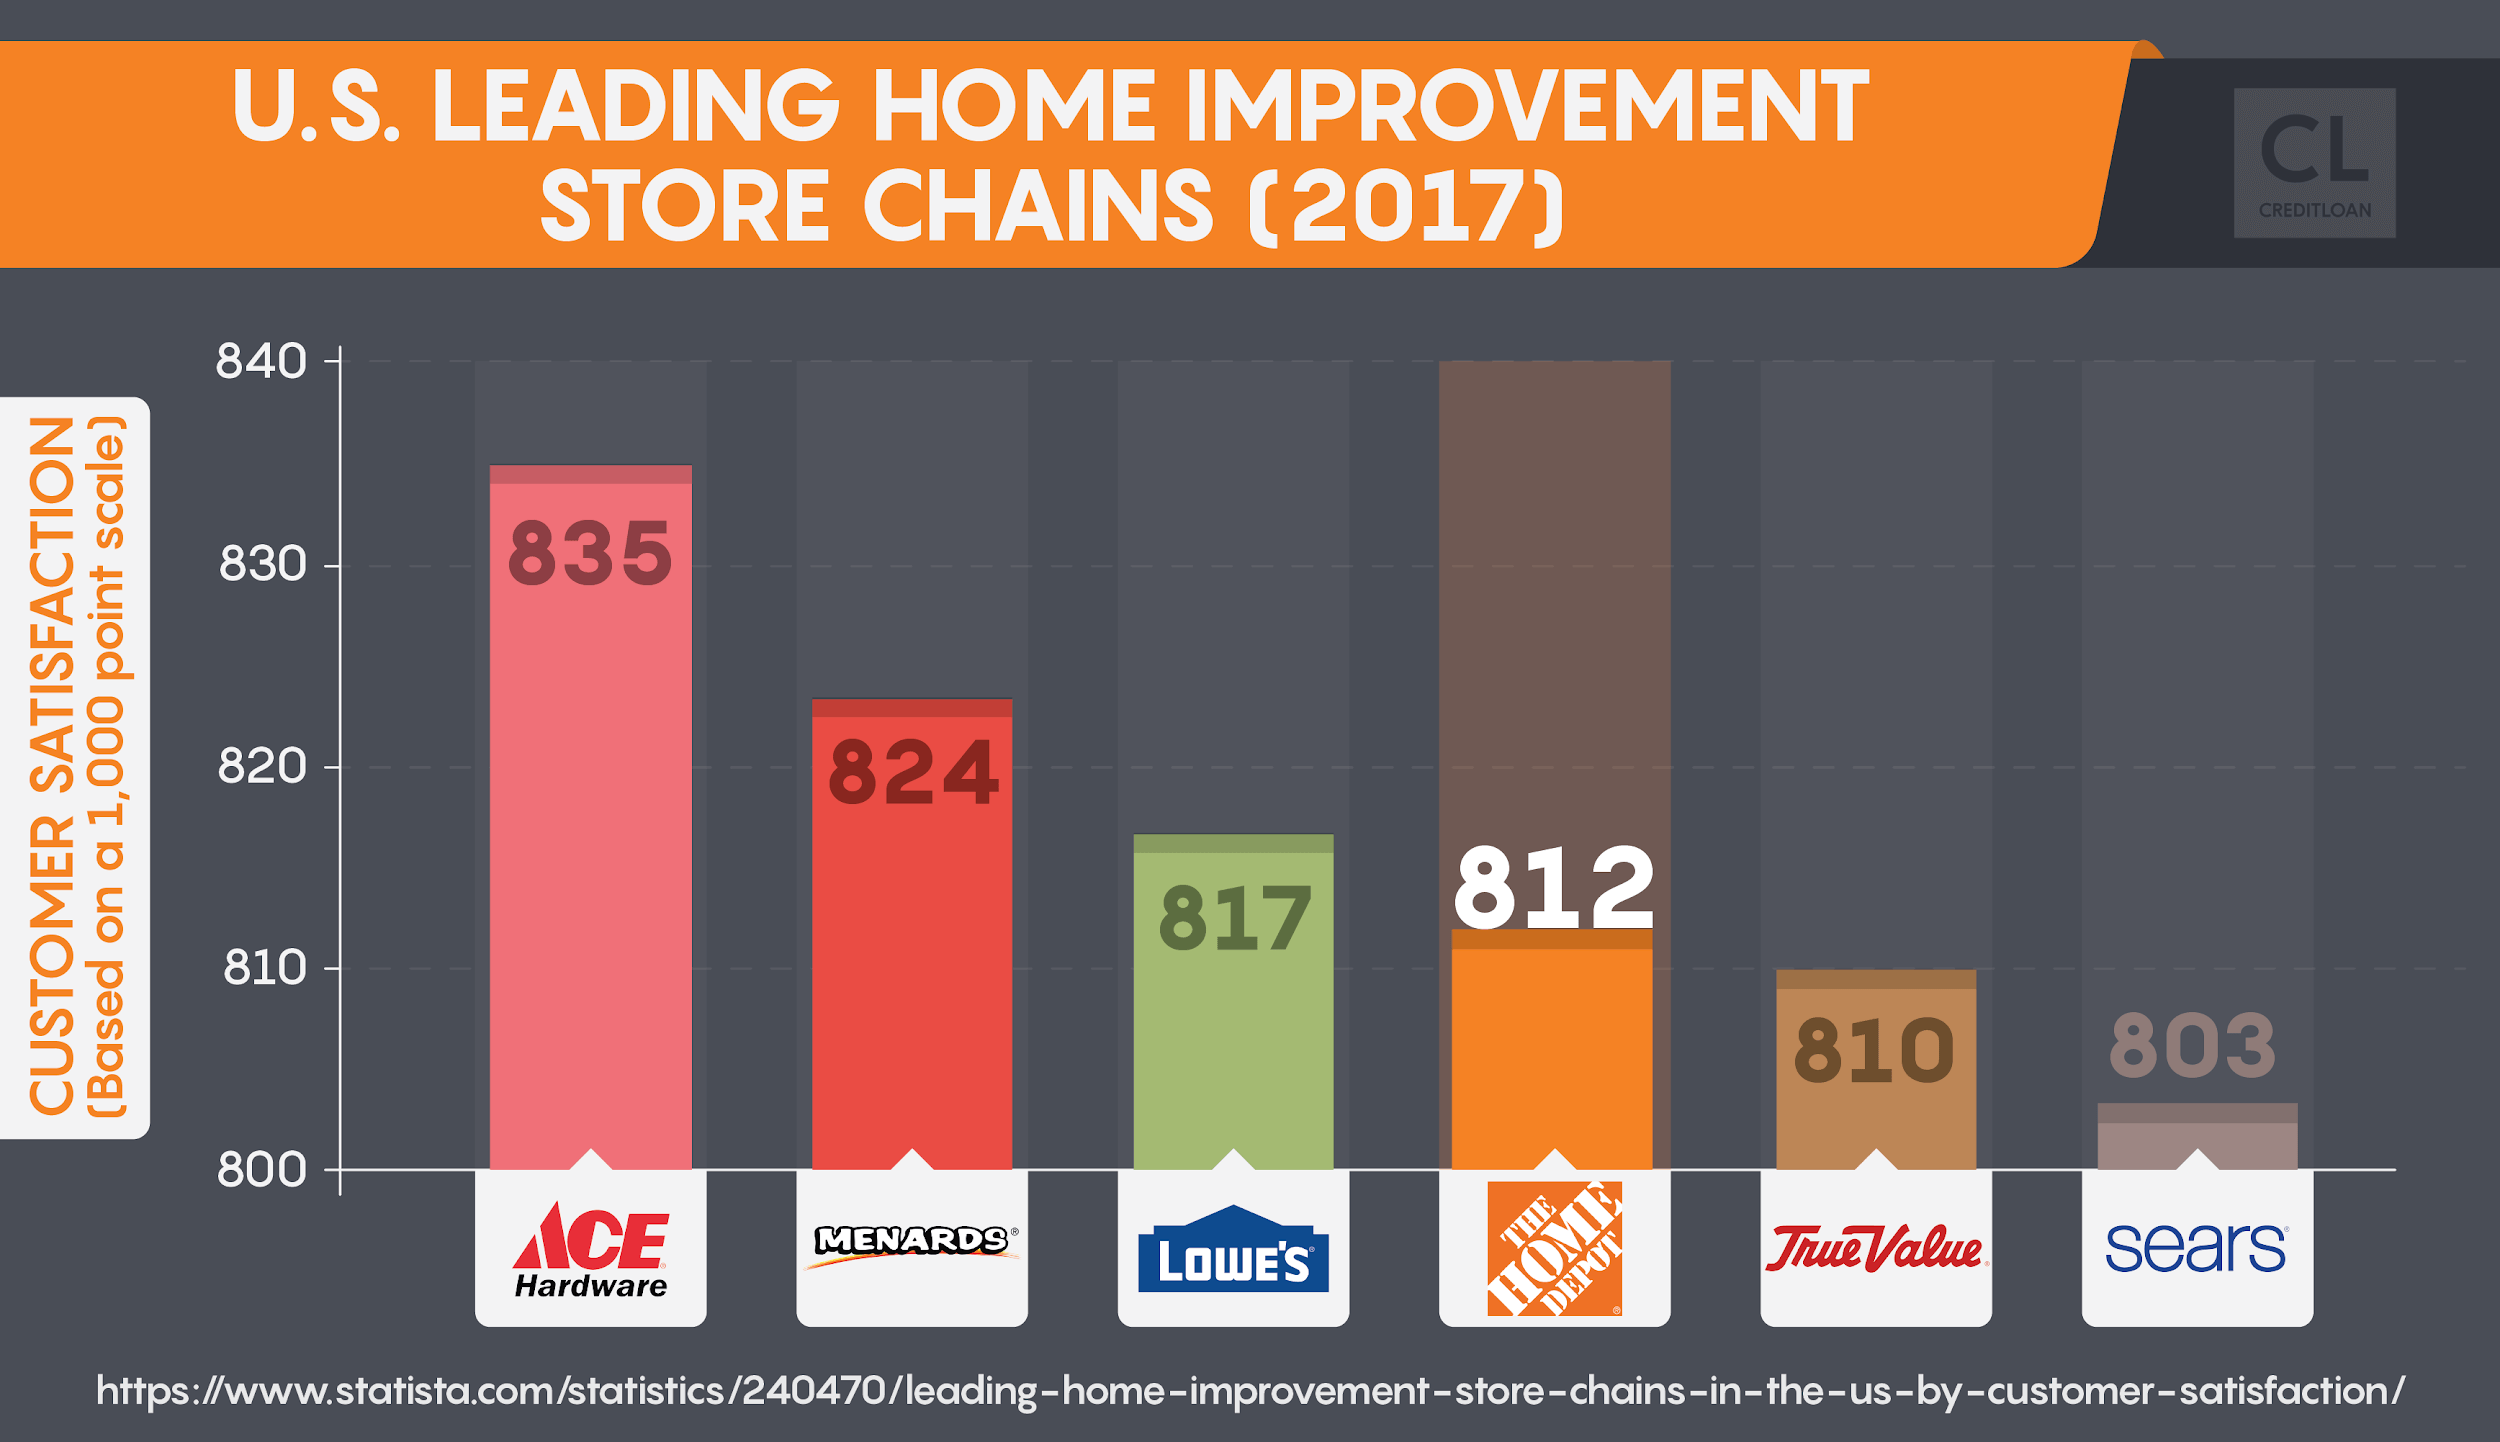 2017 U.S. Leading Home Improvement Store Chains